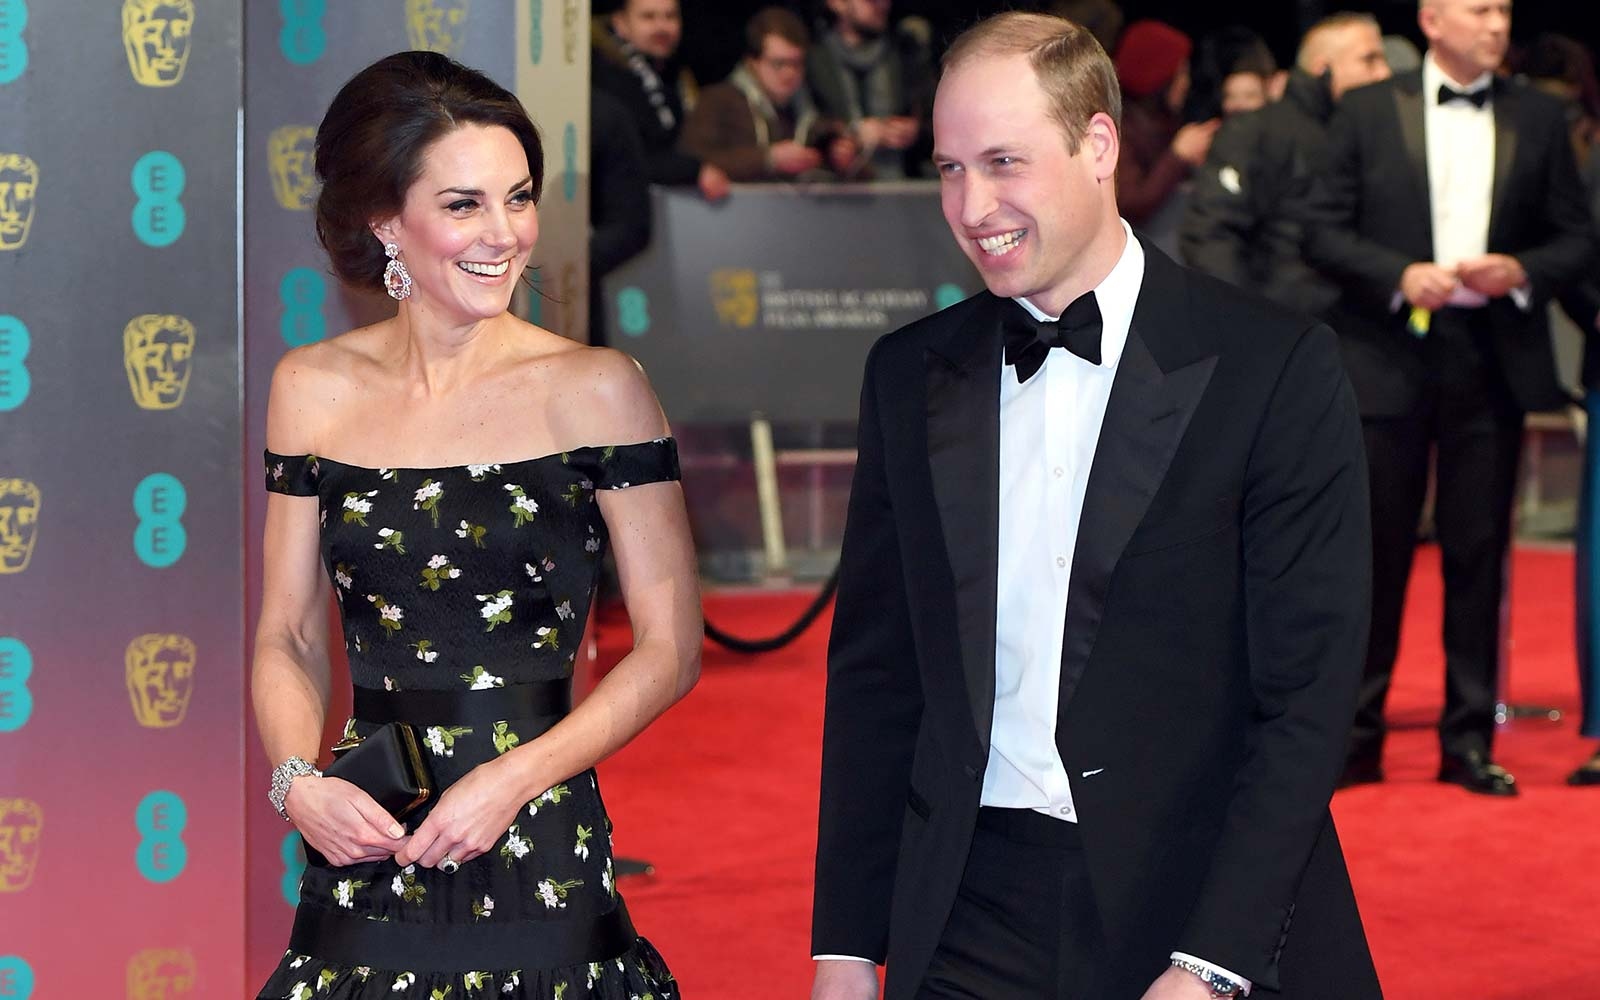 Will and Kate to Visit Paris As U.K. Begins Brexit Procedure